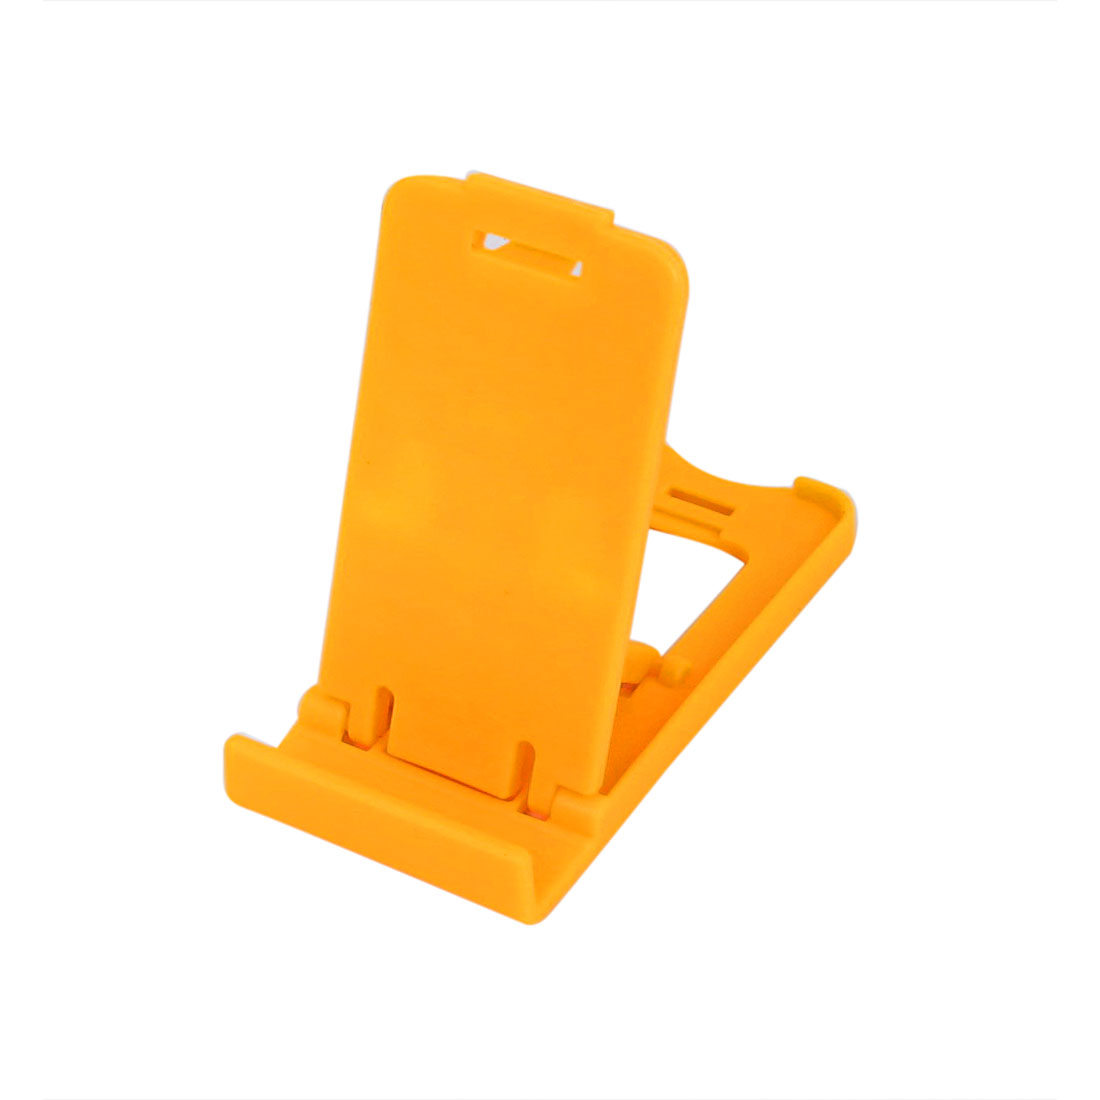 Yellow Plastic Foldable Desk Desktop Stand Holder Support Bracket for MP4 iPad iPhone Cell Phone